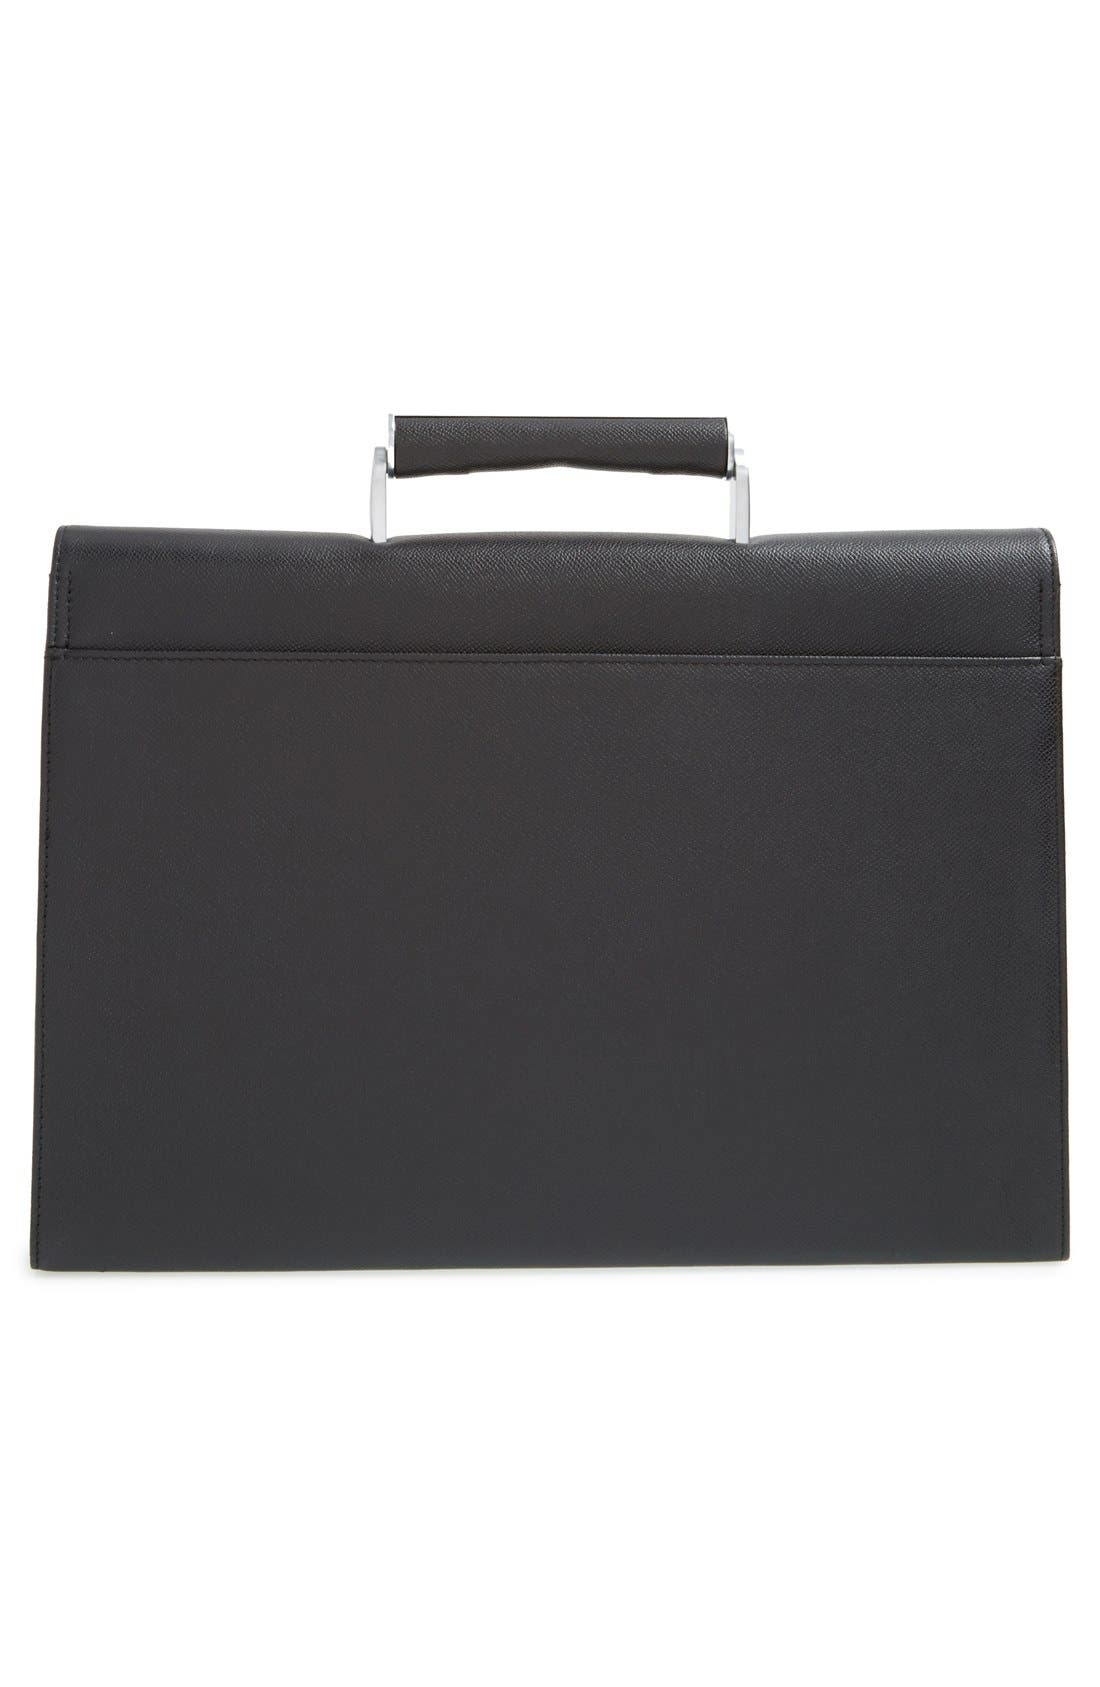 French Classic 3.0 Leather Briefcase,                             Alternate thumbnail 3, color,